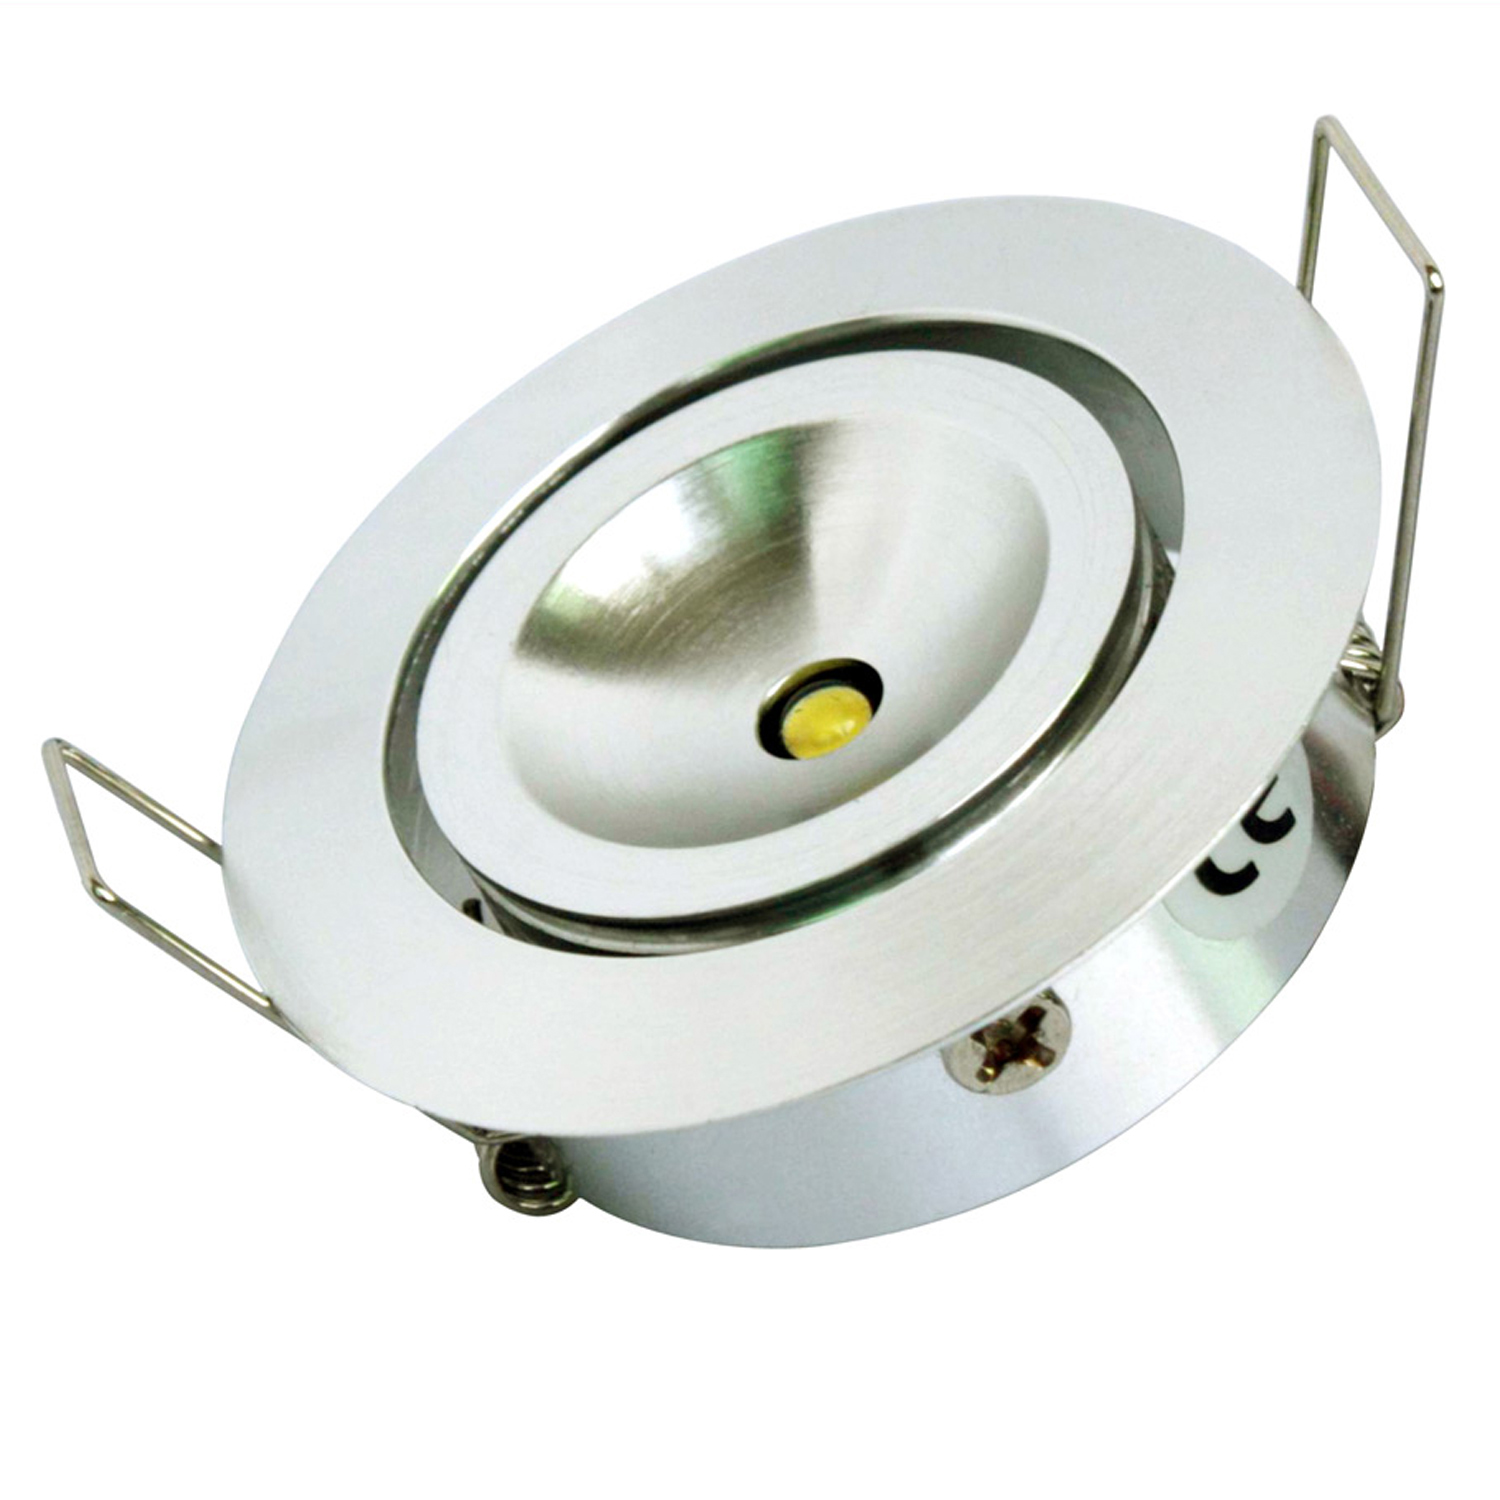 Tiltable 30° LED Cabinet/Accent/Furniture Downlight ILED-PK-201F